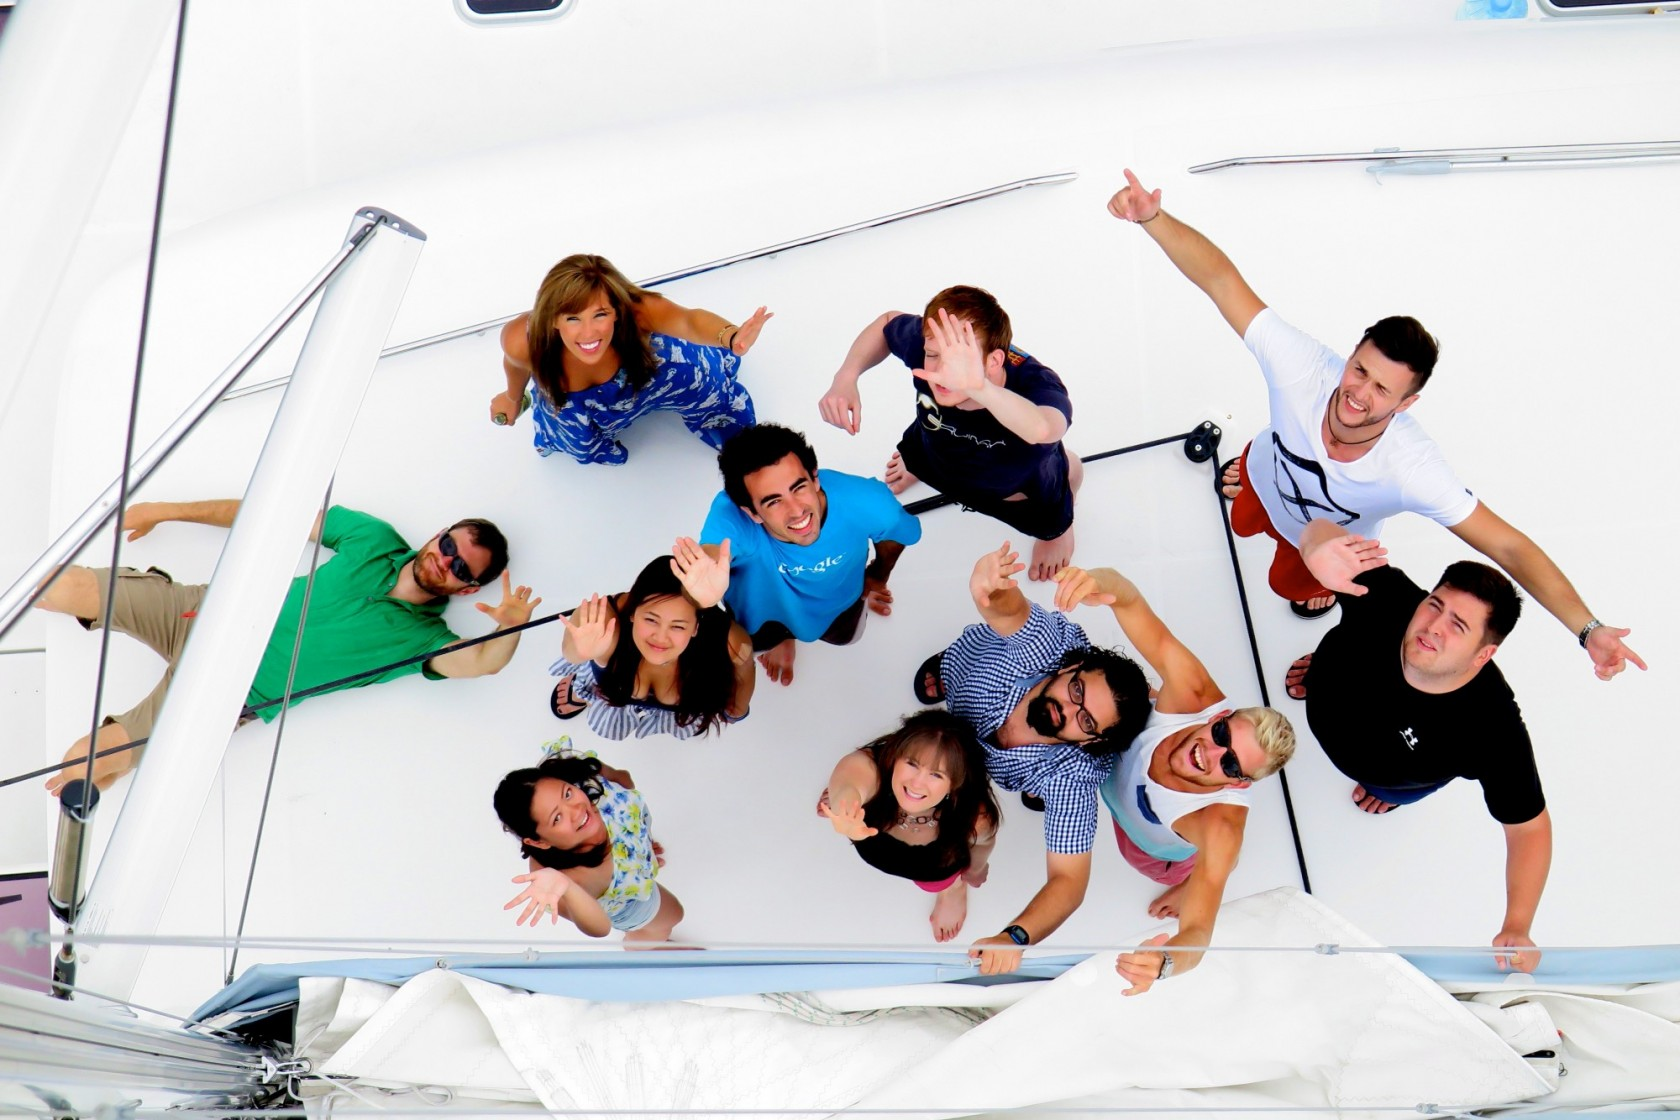 Most of us on the Yacht Hack yacht roof